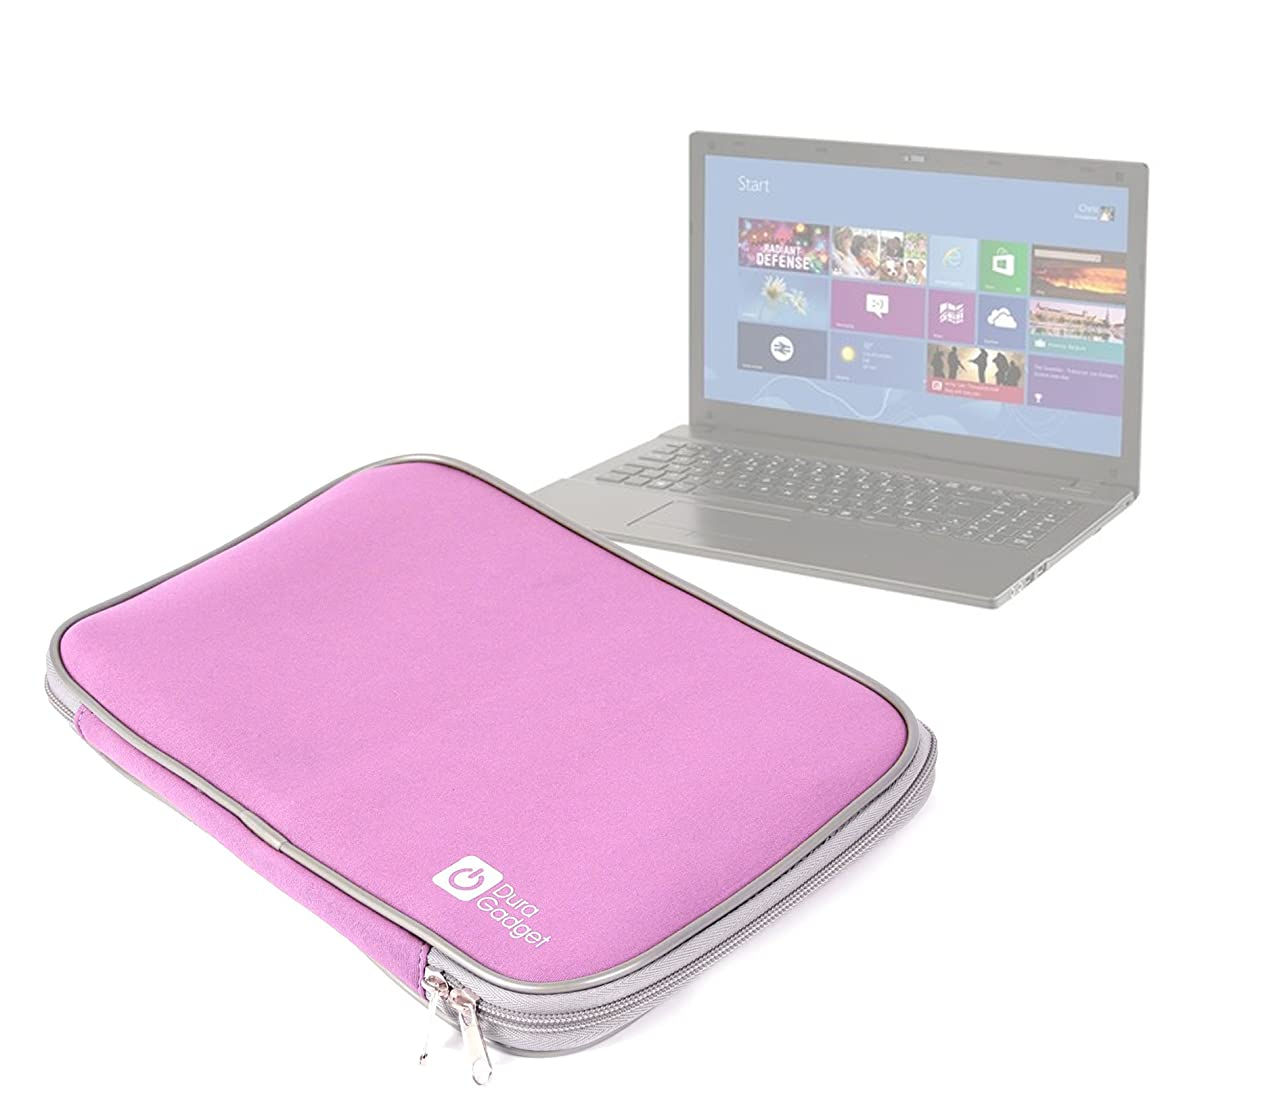 DURAGADGET Shock Proof & Water Resistant Soft Pink Neoprene Laptop Case for PC Specialist 15.6